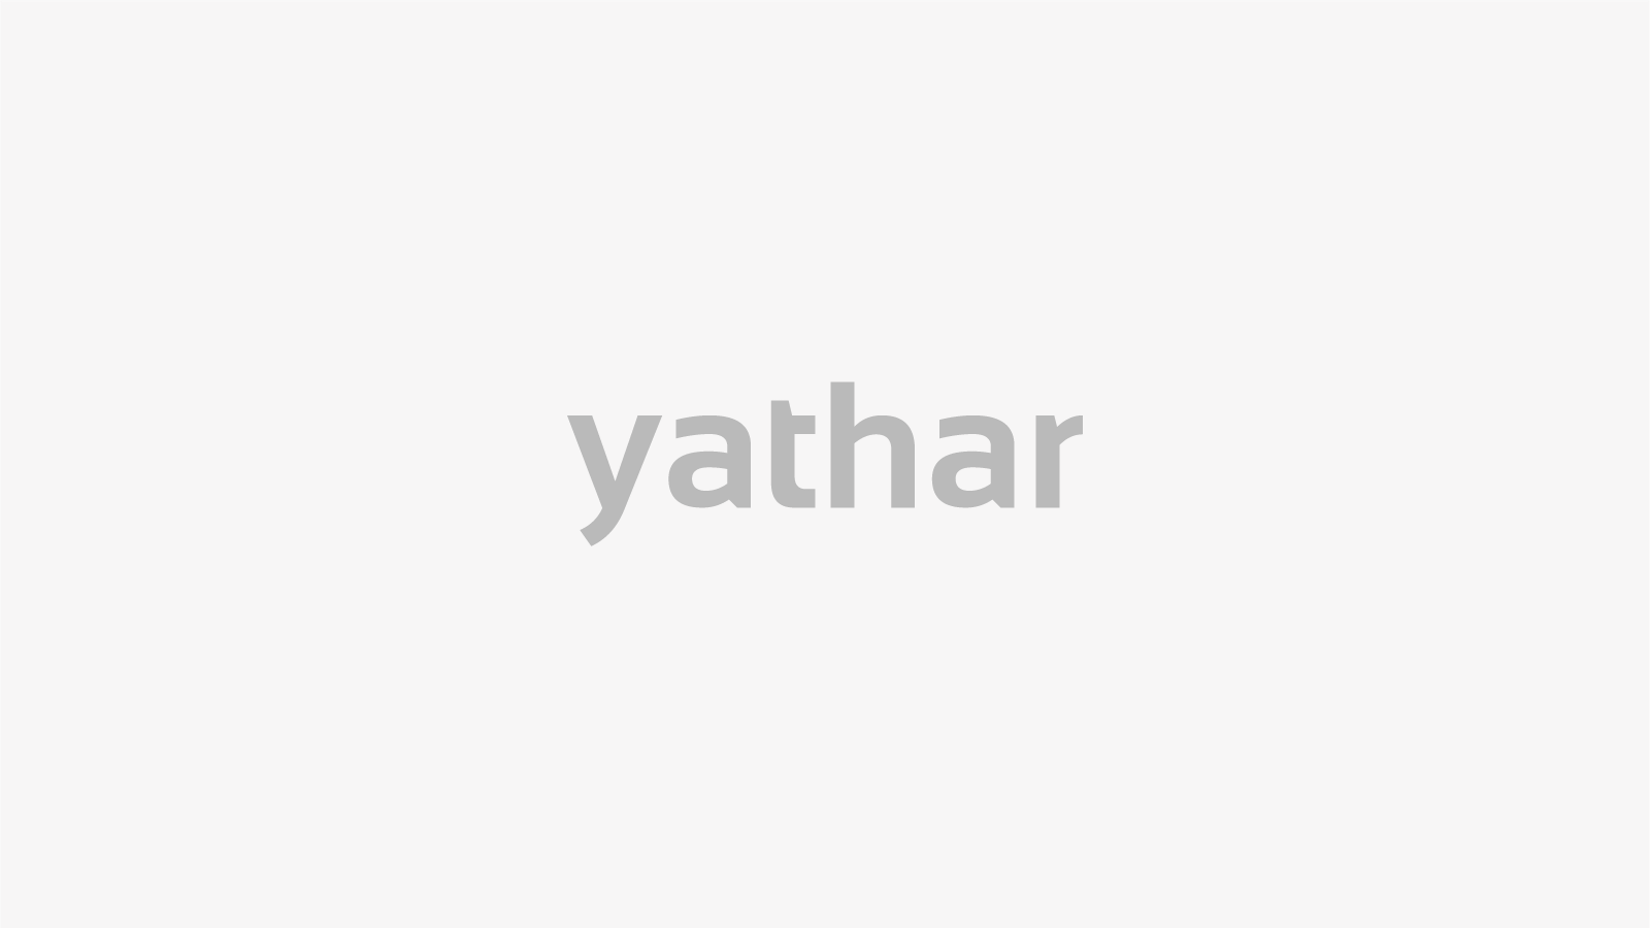 Waddy Thai | yathar